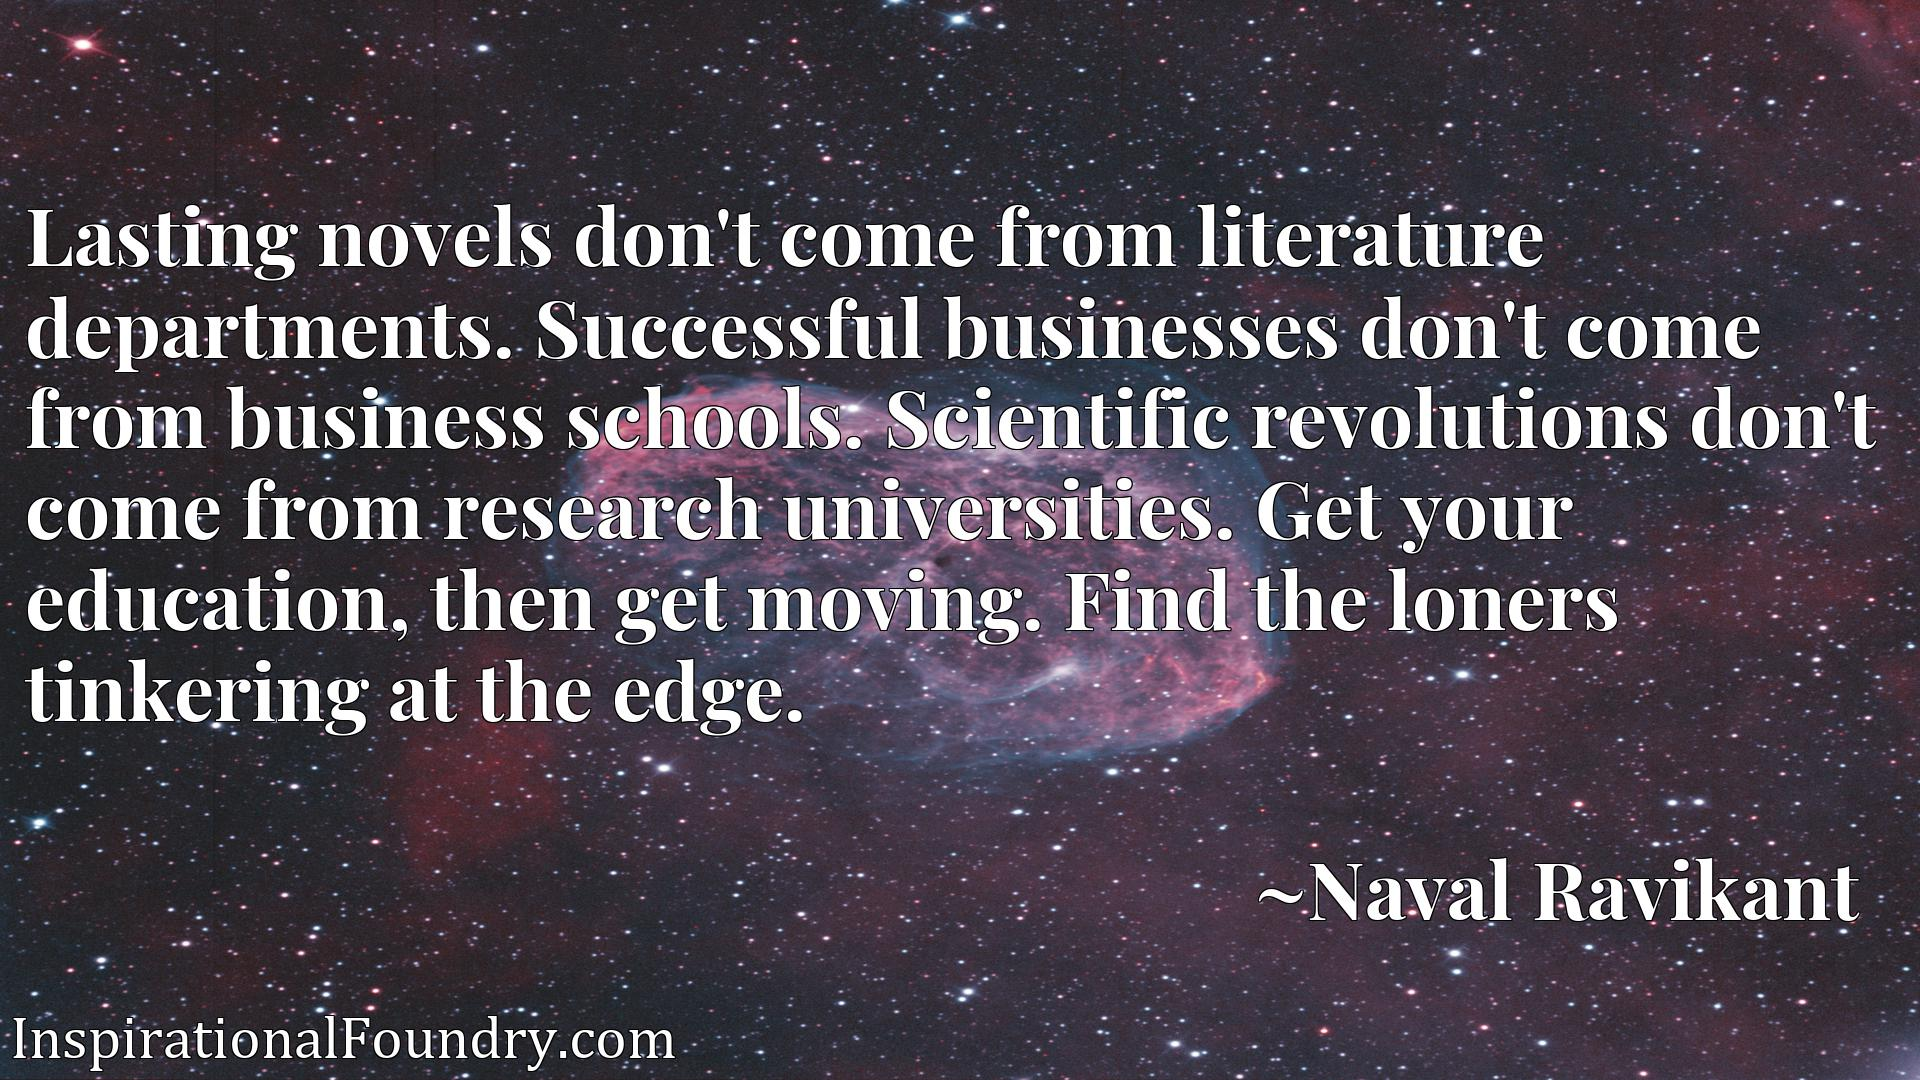 Lasting novels don't come from literature departments. Successful businesses don't come from business schools. Scientific revolutions don't come from research universities. Get your education, then get moving. Find the loners tinkering at the edge.